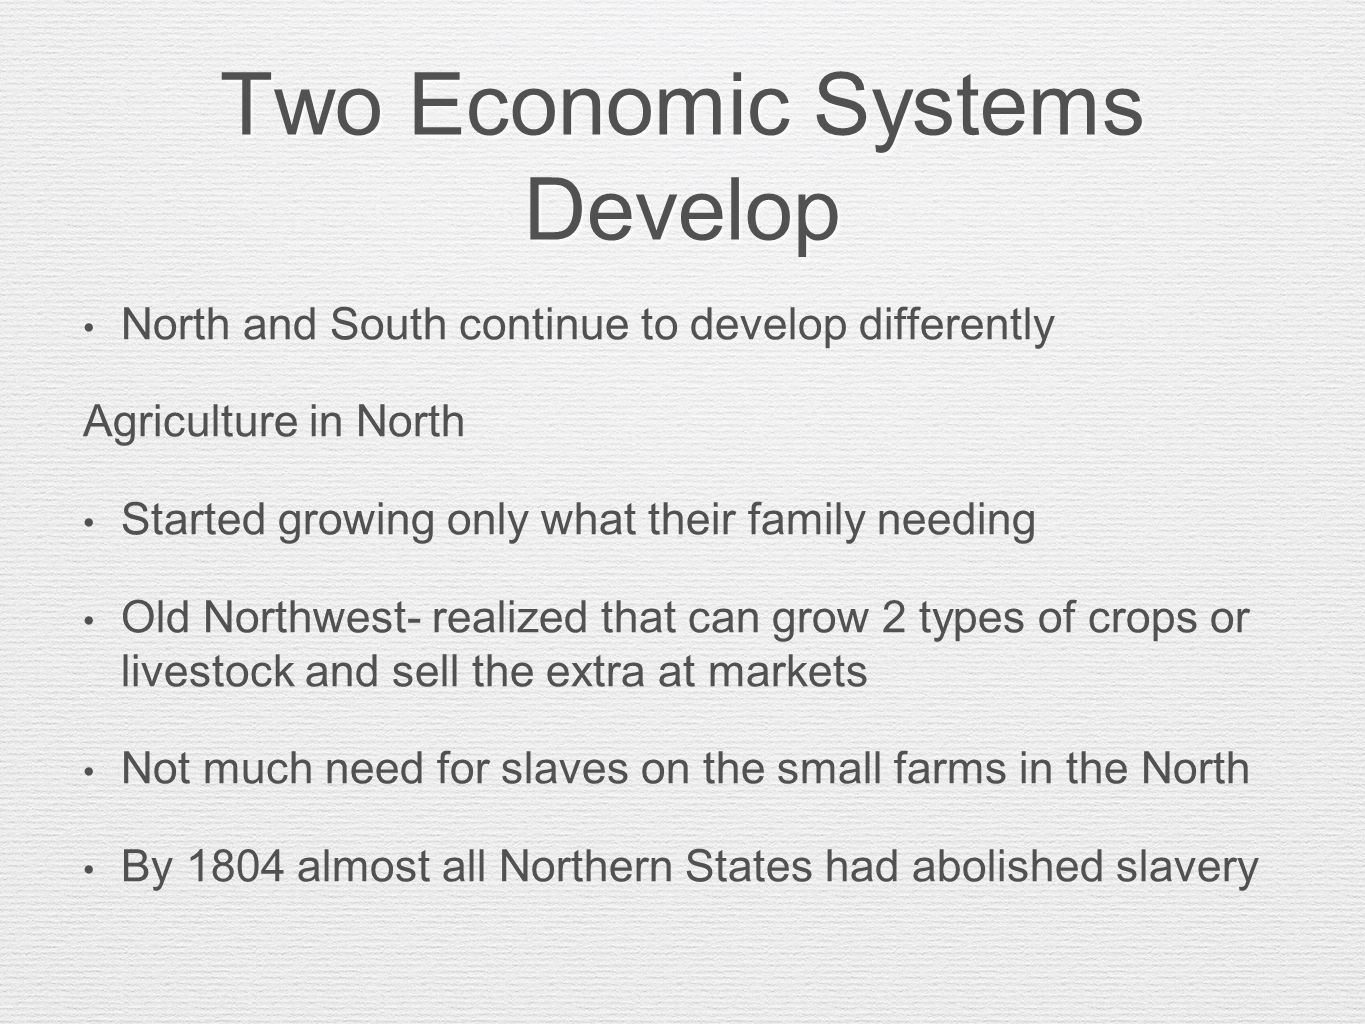 Two Economic Systems Develop